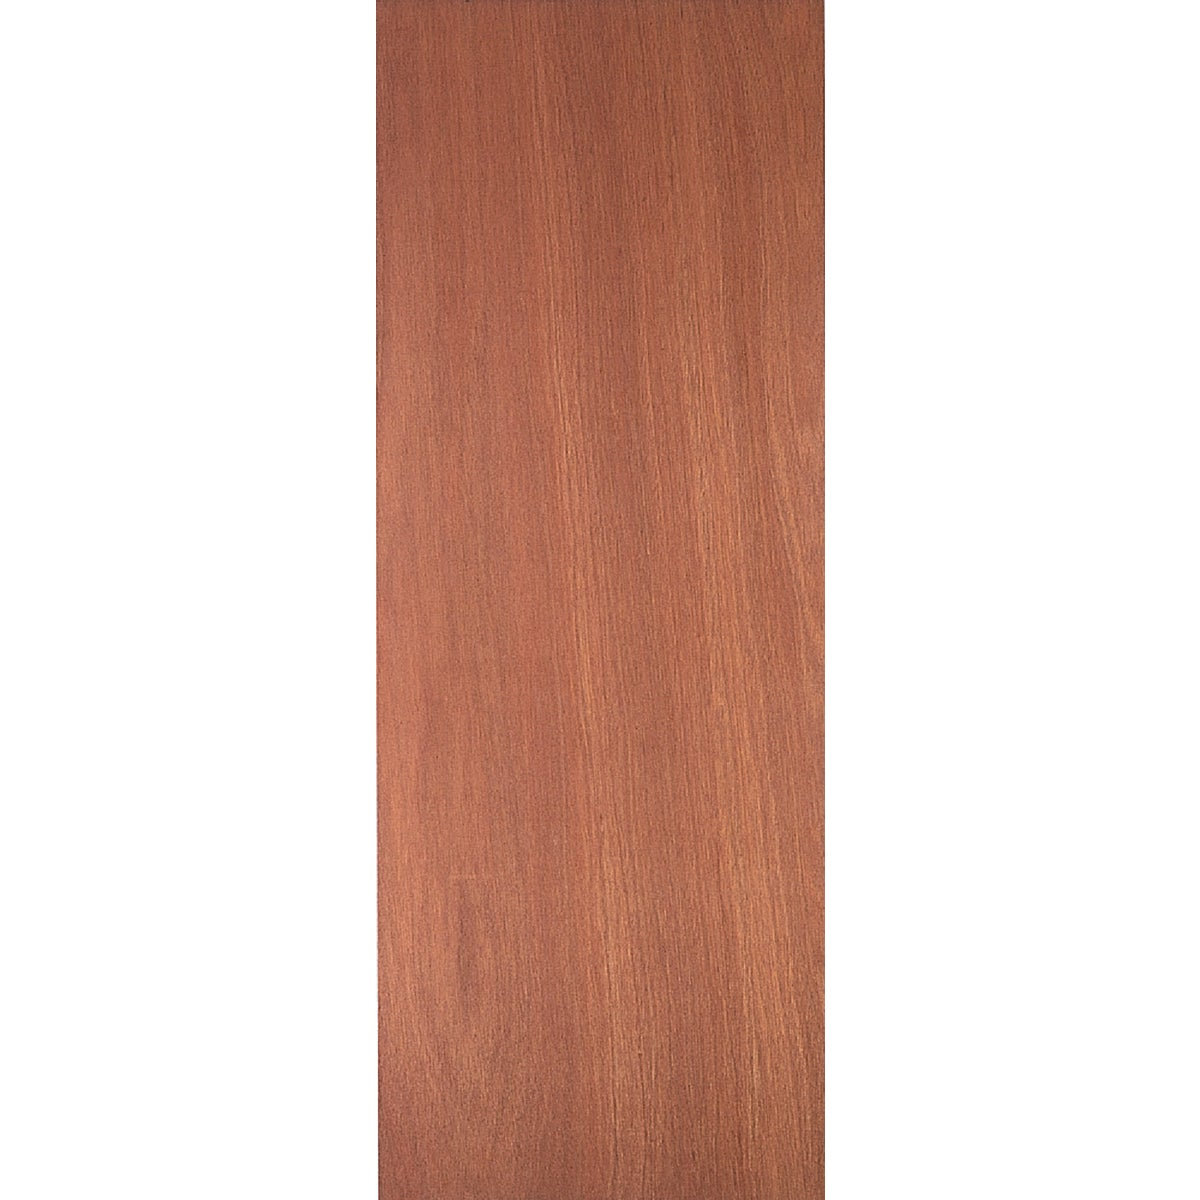 "2/4 1-3/8"" LAUAN HC DOOR -  by Masonite"